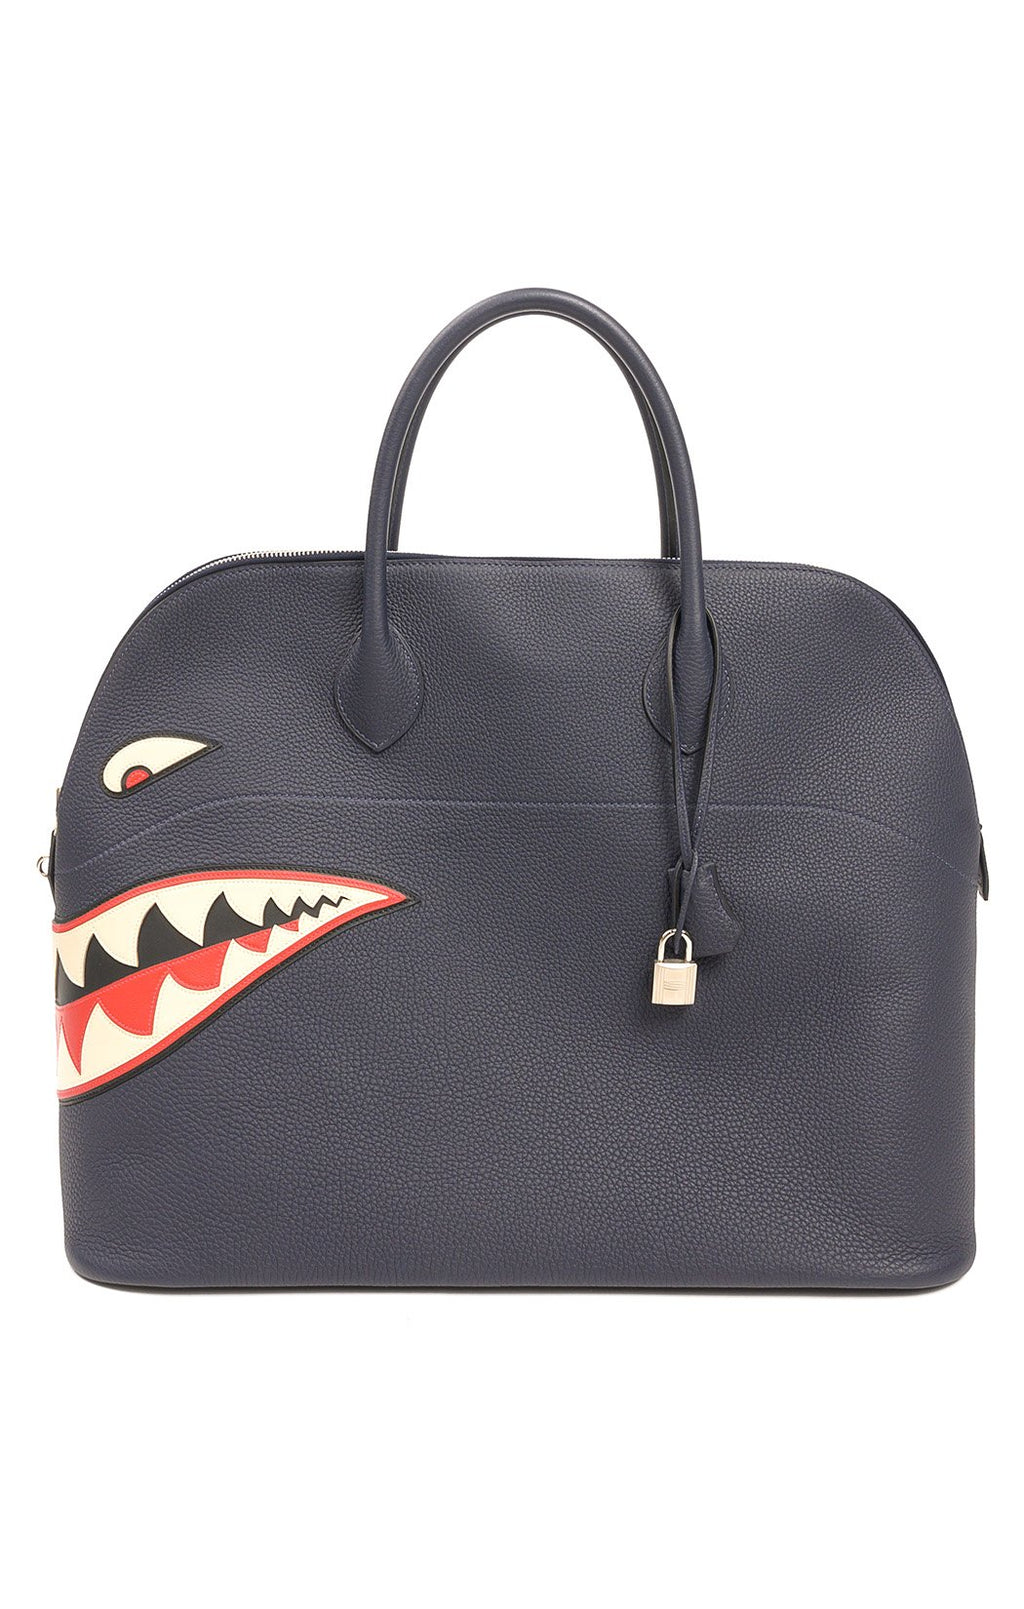 "Front view of HERMES (SHARK BOLIDE) Handbag  Size: 18""x 14.5"" x 10"""